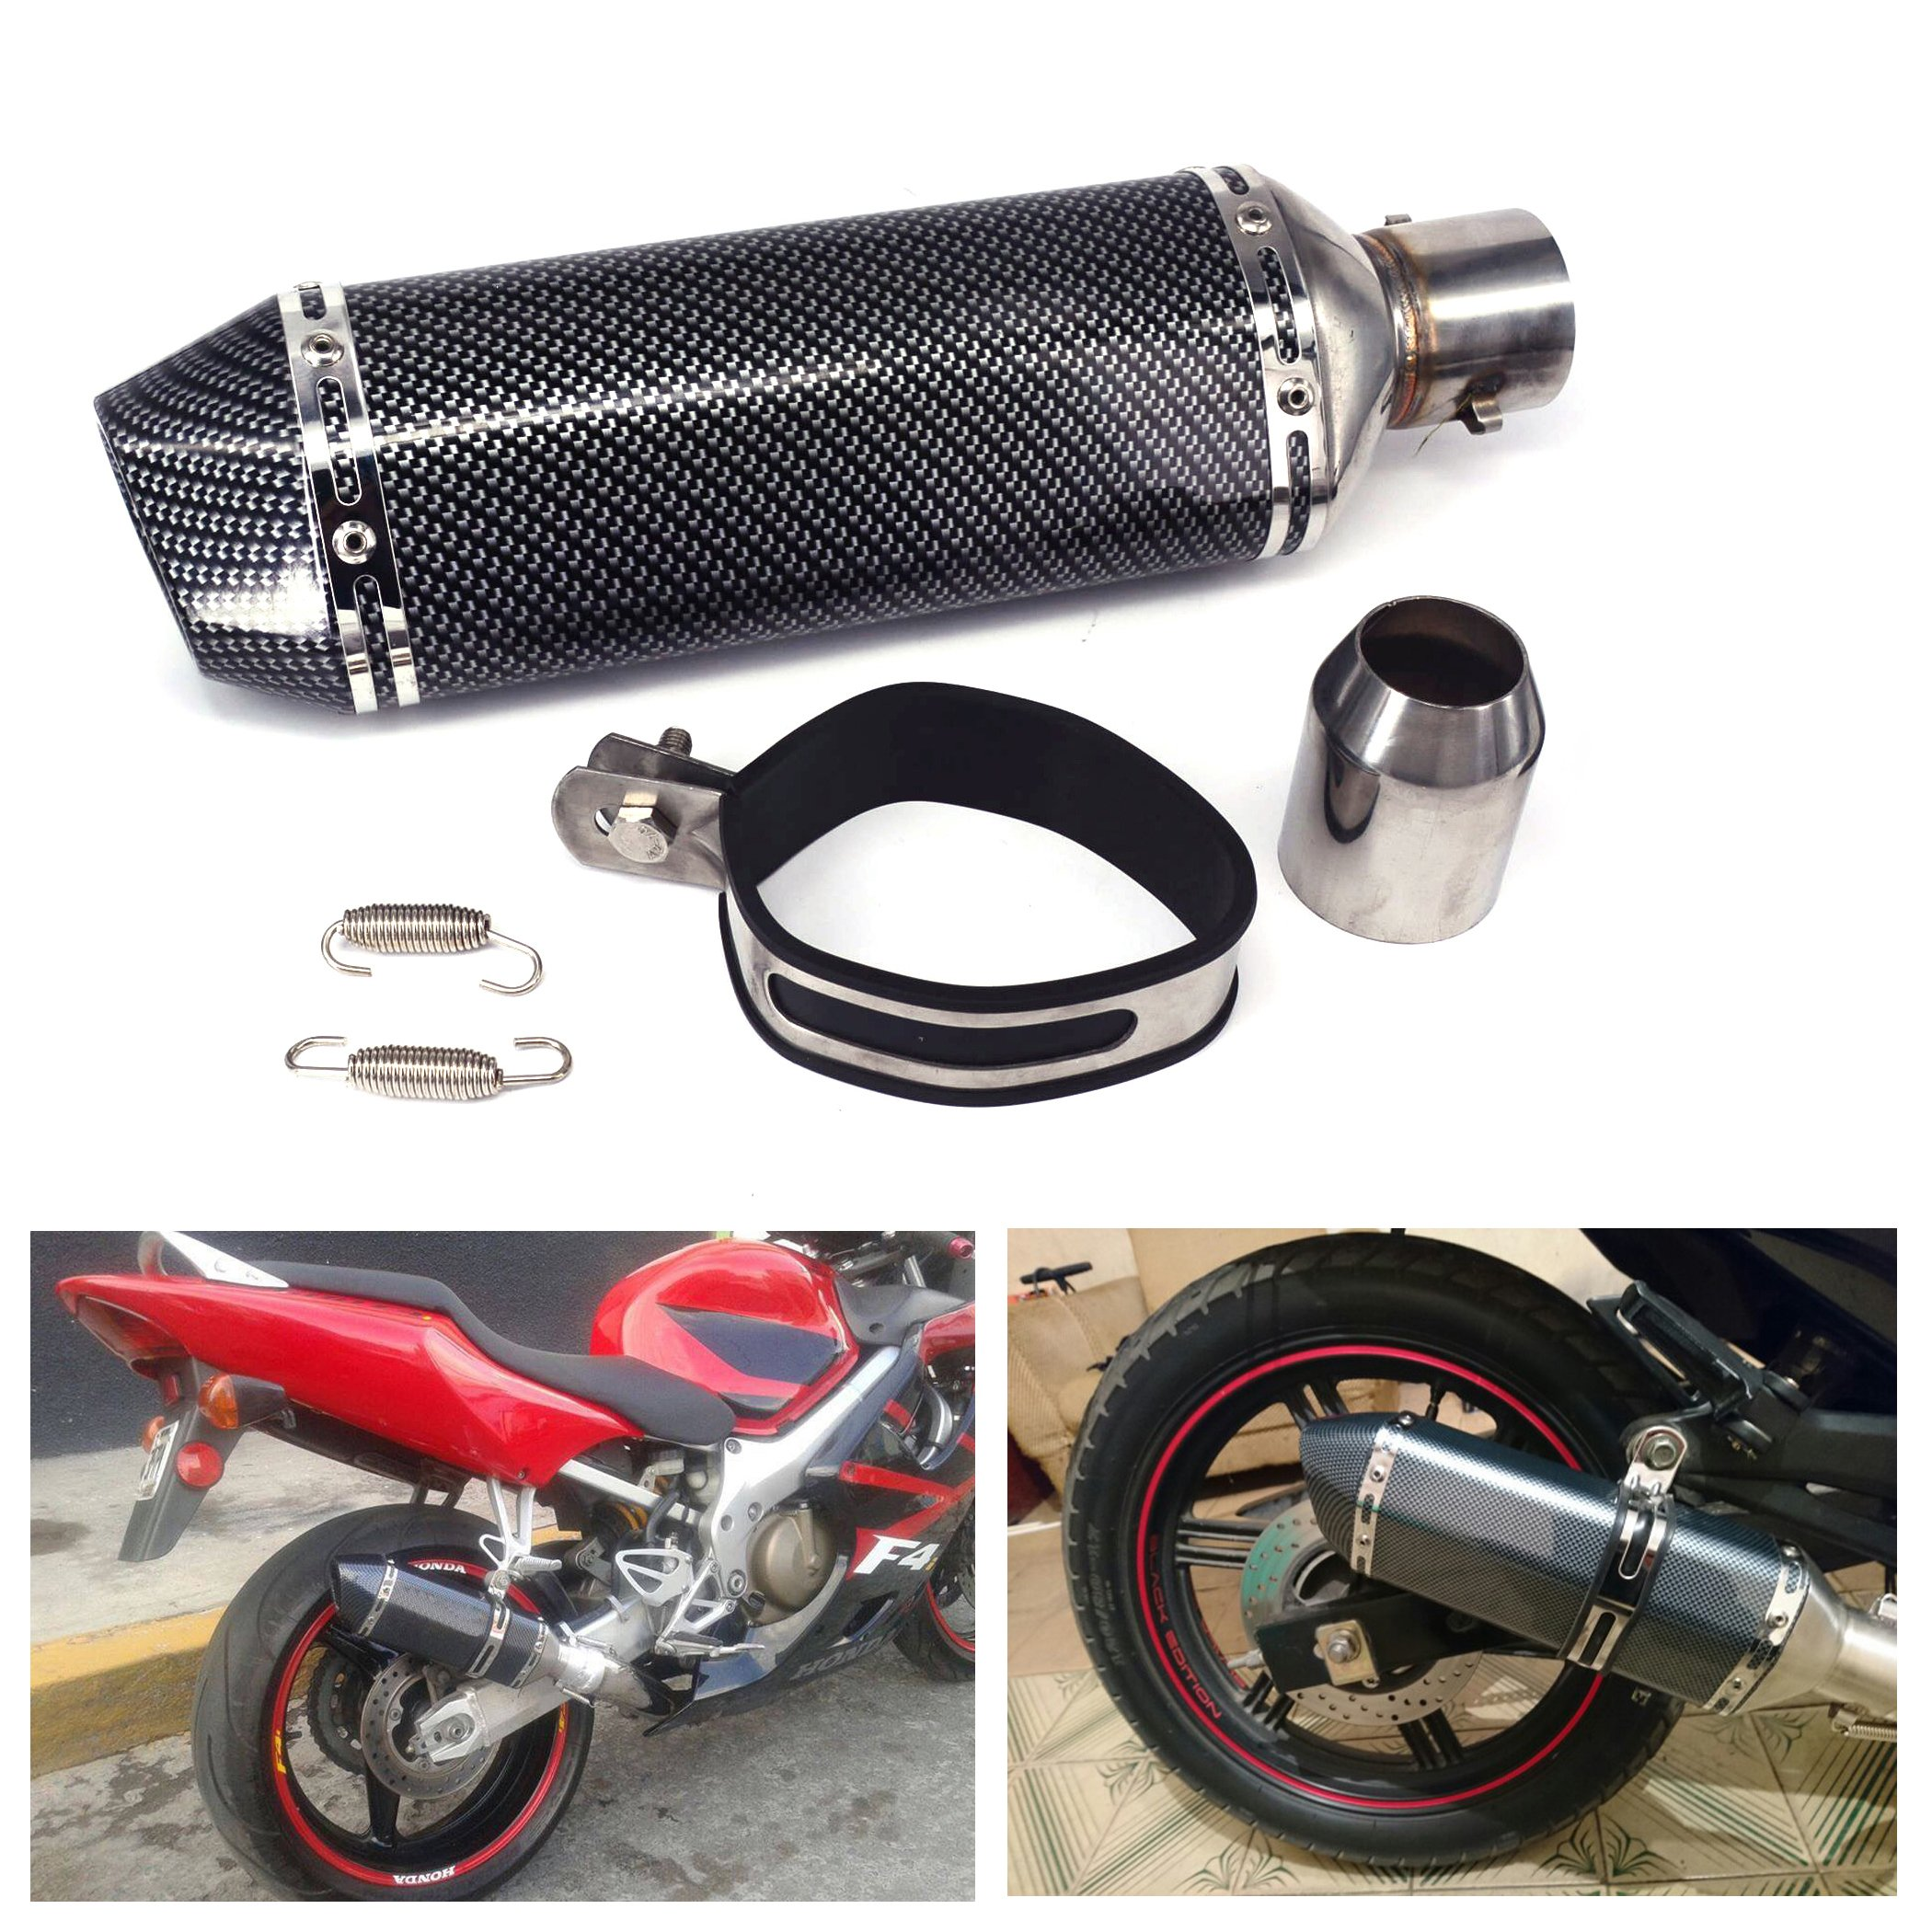 JFG RACING Universal 1.5-2'' Inlet Slip On Exhaust Muffler With Removable DB Killer - Street Bike Scooter Motorcycle - Carbon Fiber